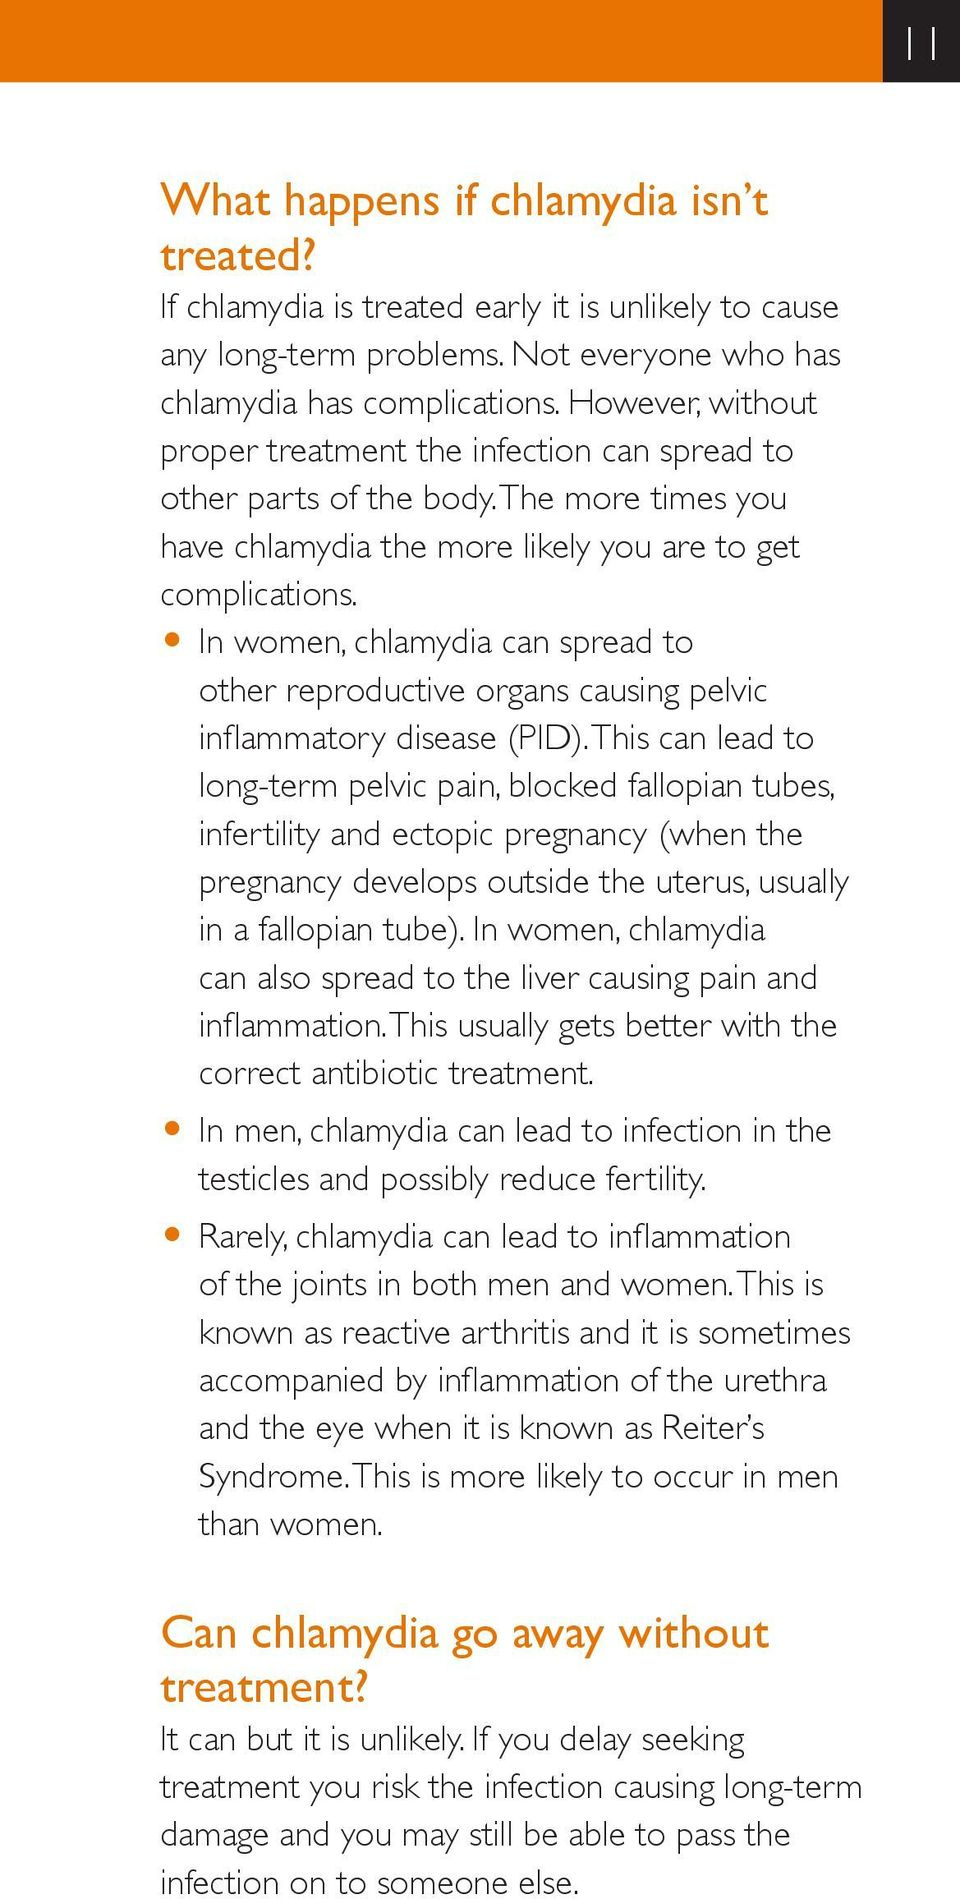 O In women, chlamydia can spread to other reproductive organs causing pelvic inflammatory disease (PID).